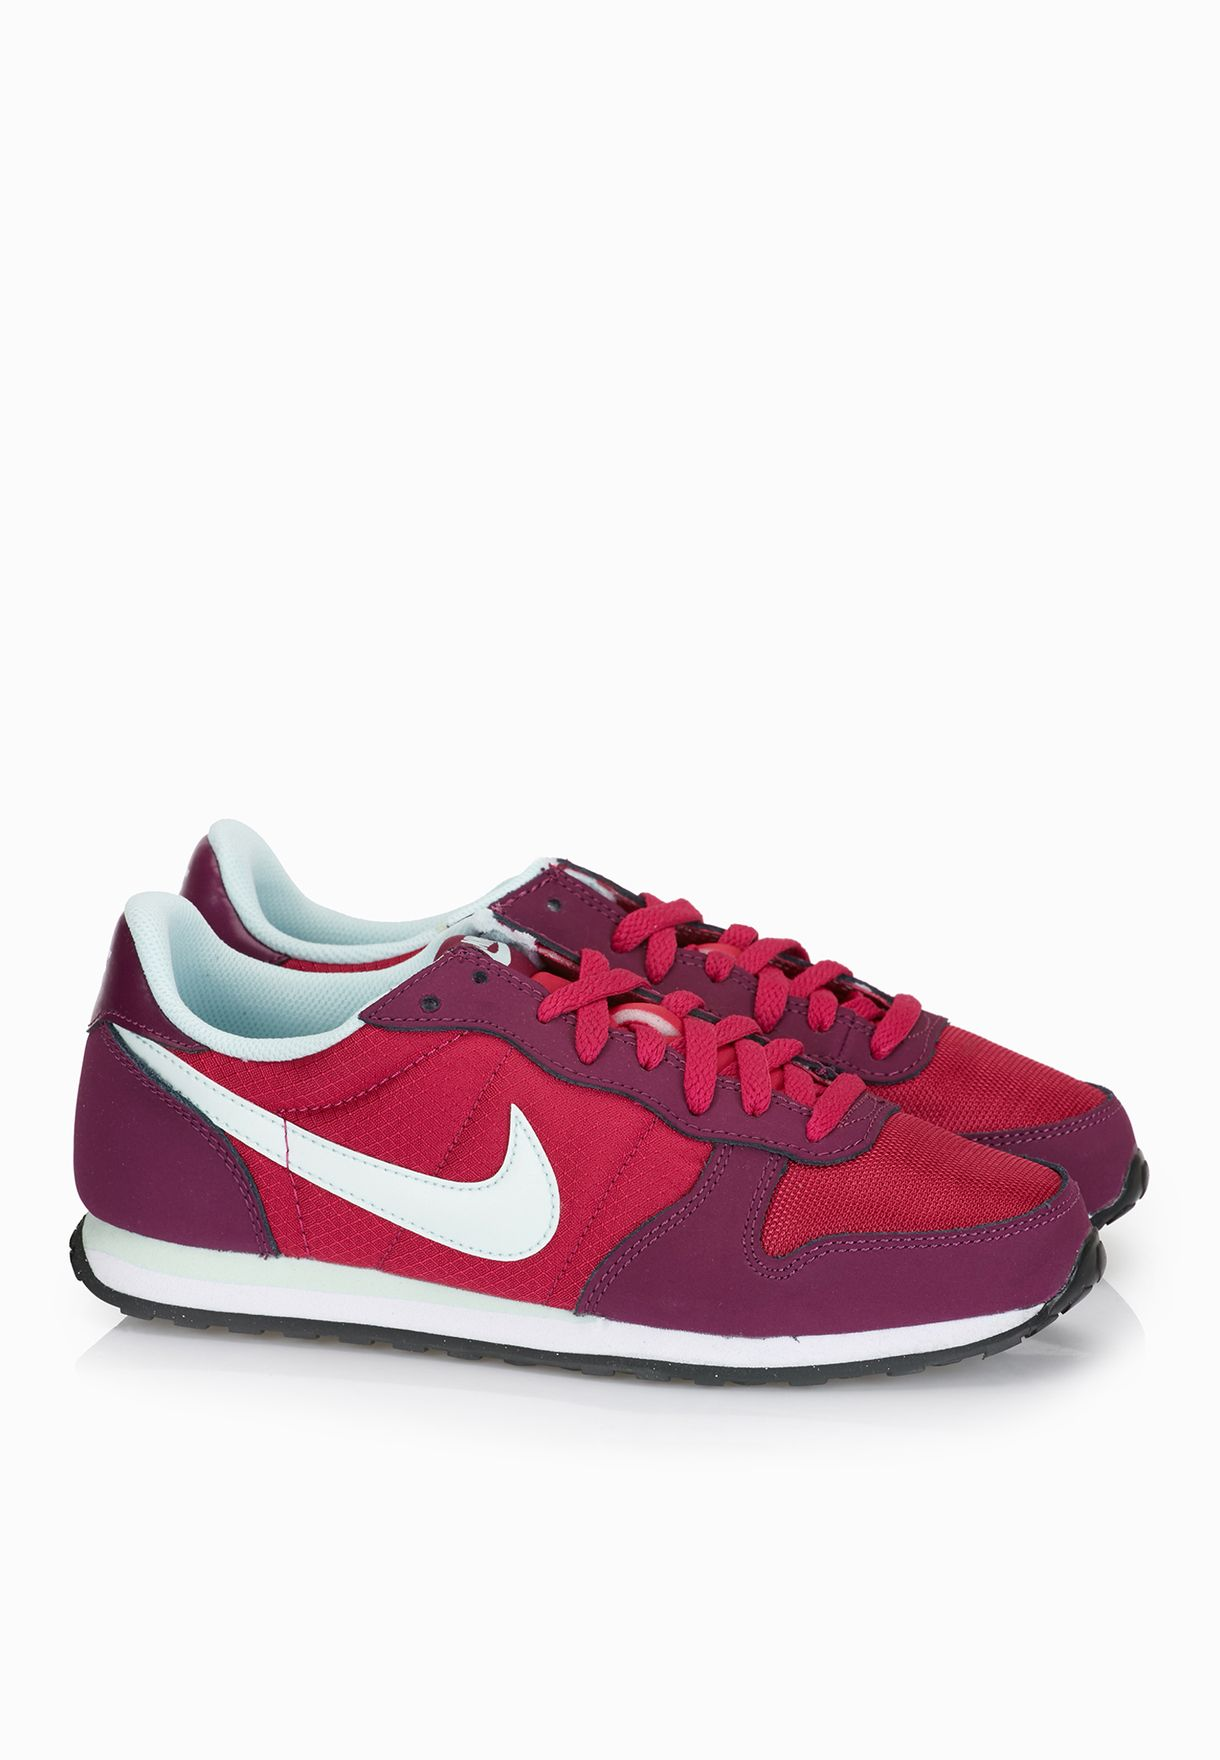 Caso Wardian Desierto Cordero  Buy Nike pink Genicco Sneakers for Women in MENA, Worldwide | 644451-635